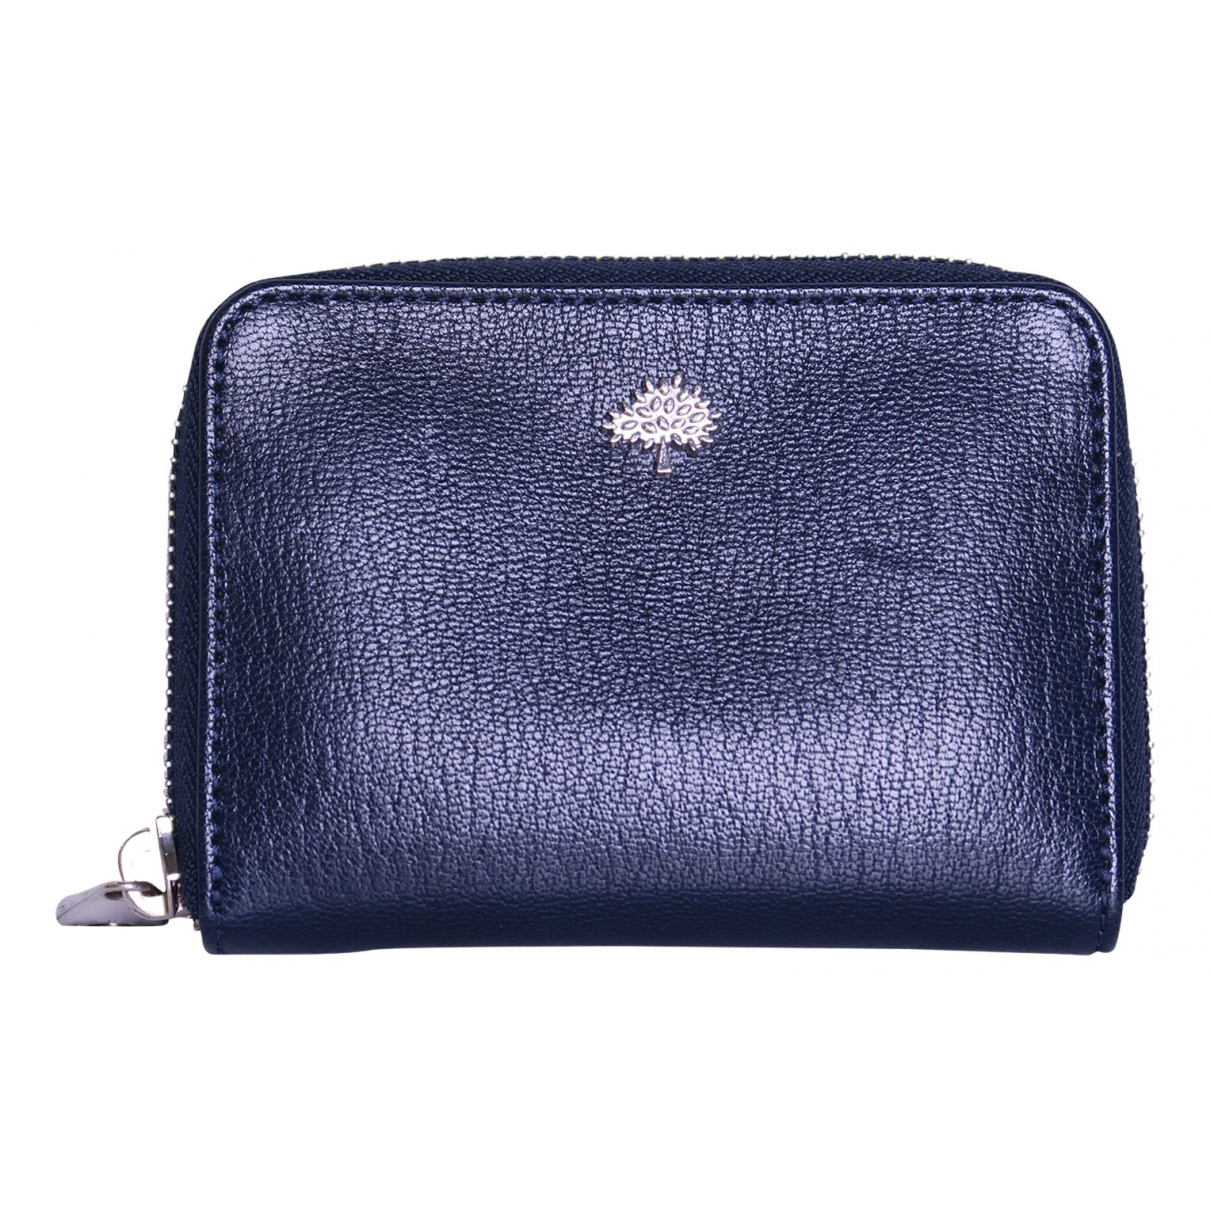 Mulberry N Blue Leather wallet for Women N